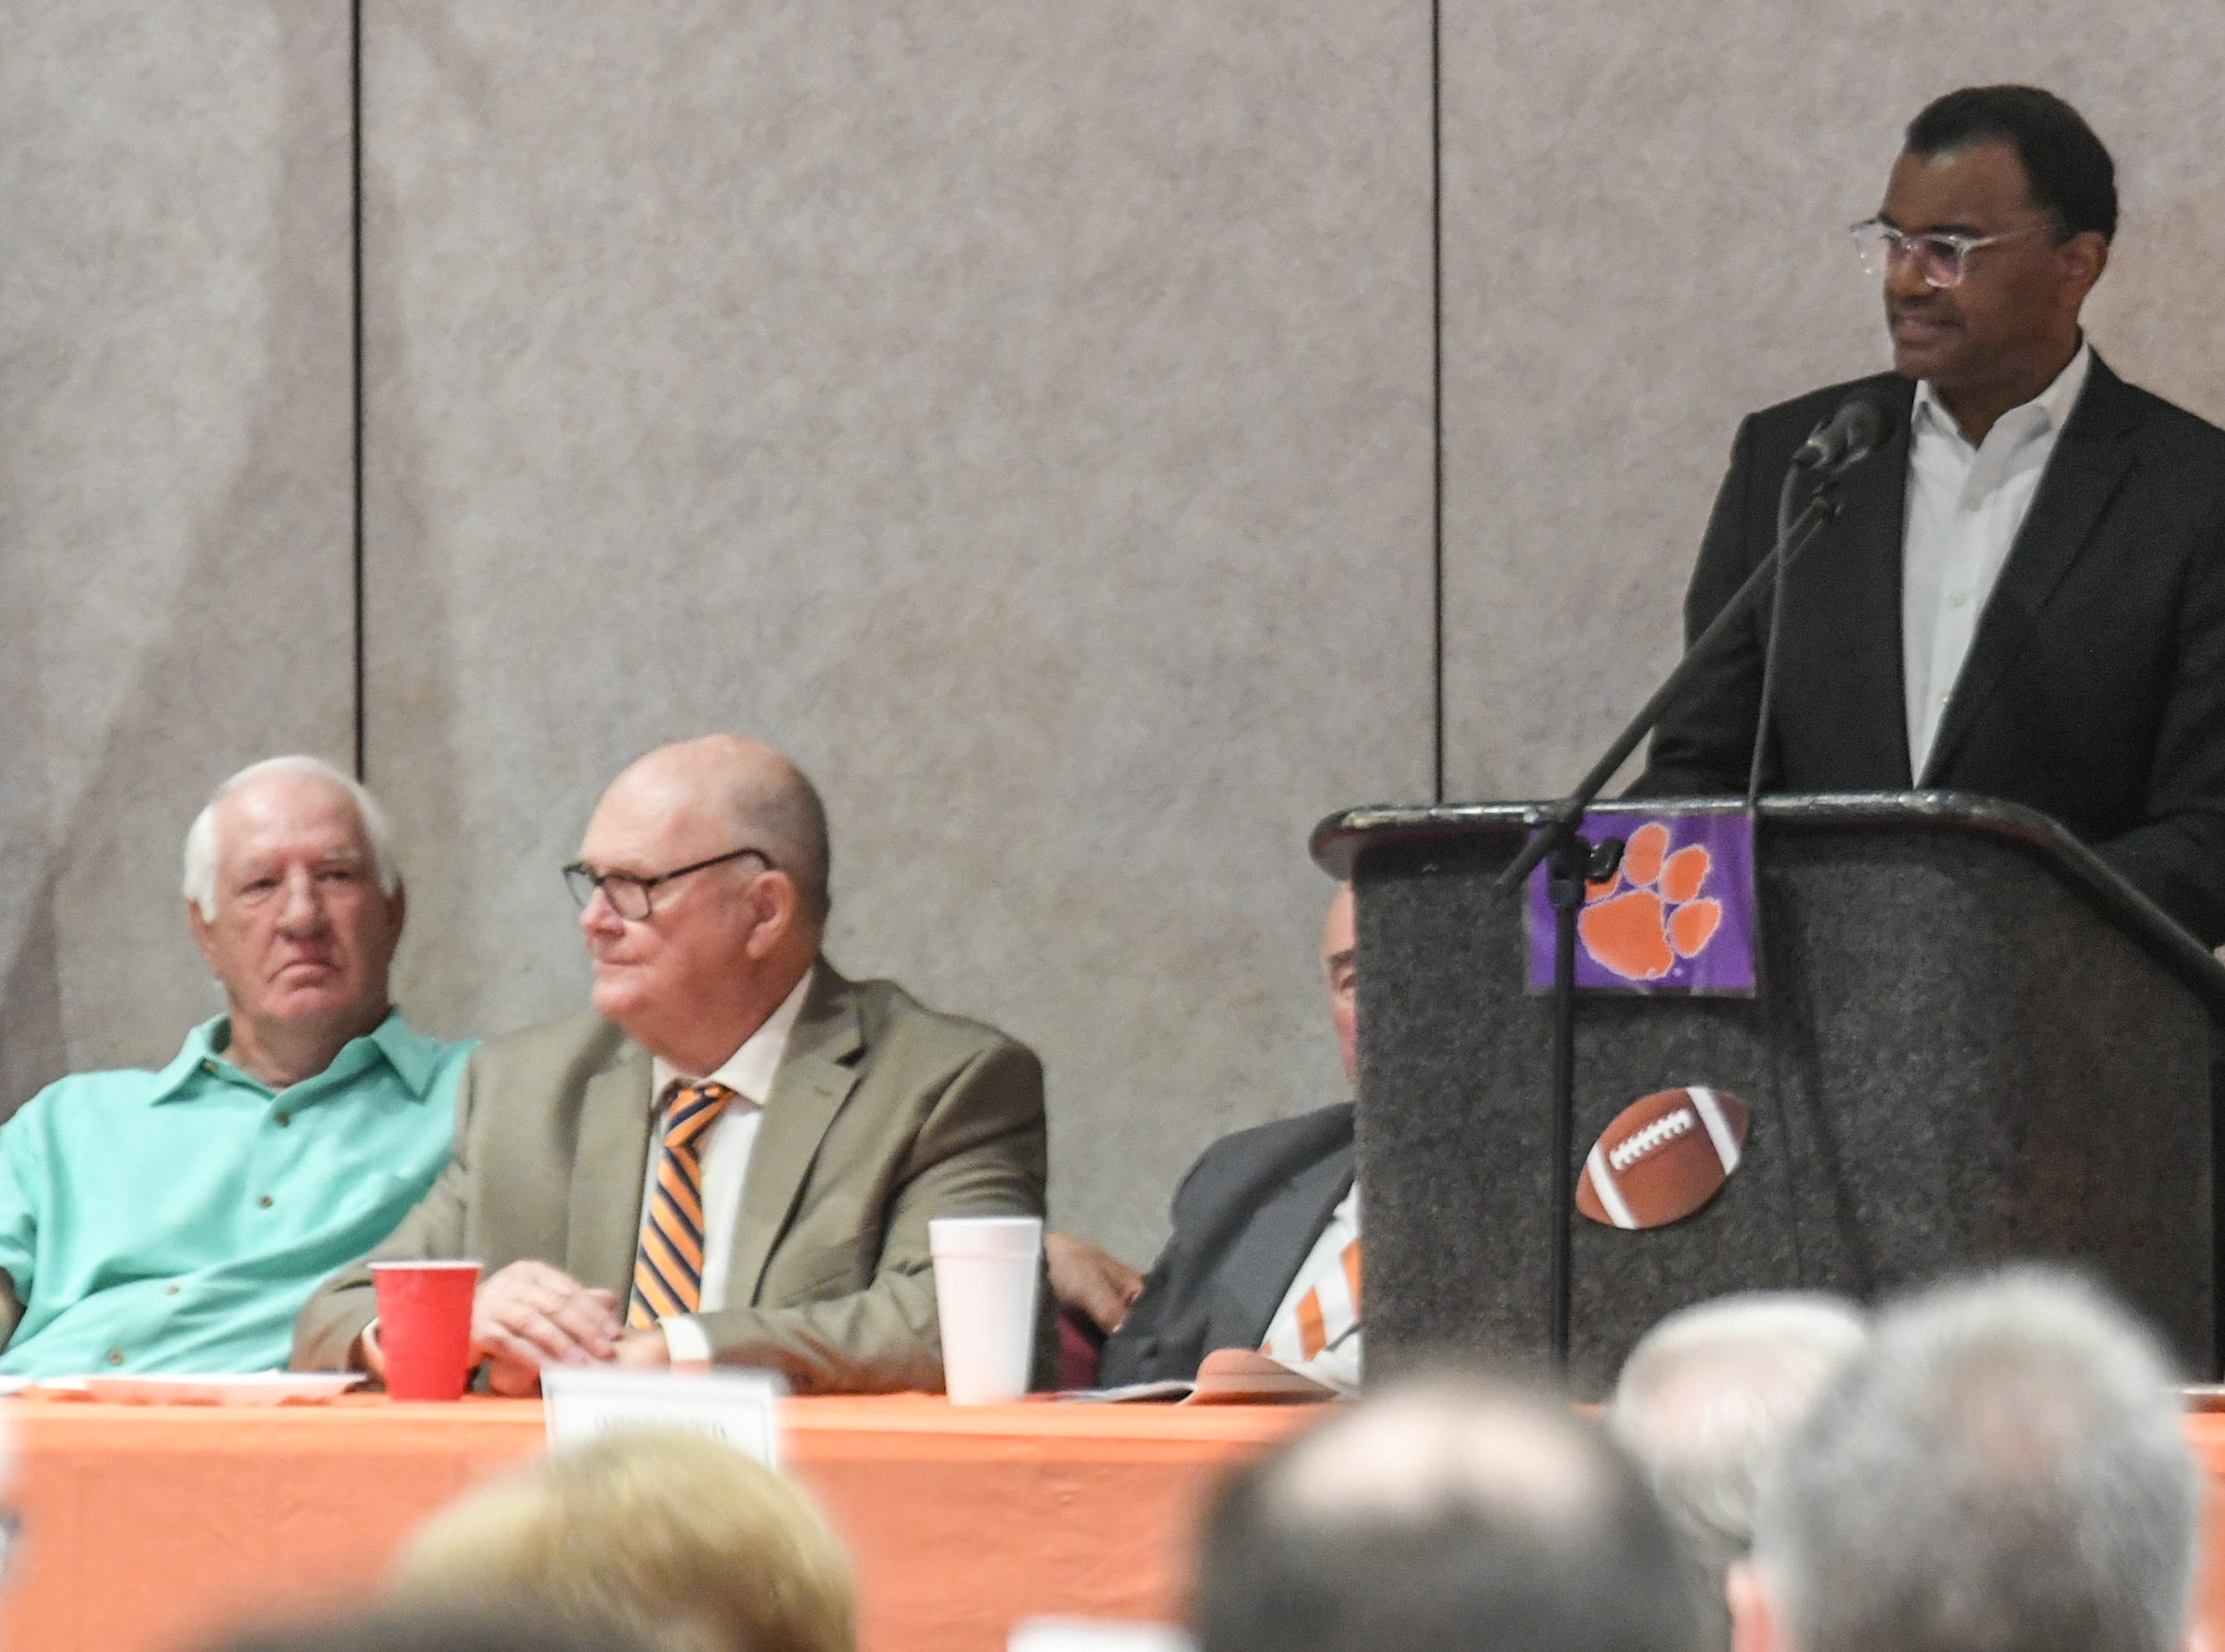 Former Clemson football coach Danny Ford, left, listens to featured speaker Perry Tuttle, right, a former player of his from the 1981 championship season team, during the Anderson Area Touchdown Club Annual Awards Banquet at the Anderson County Civic Center Monday, April 8th, 2019.